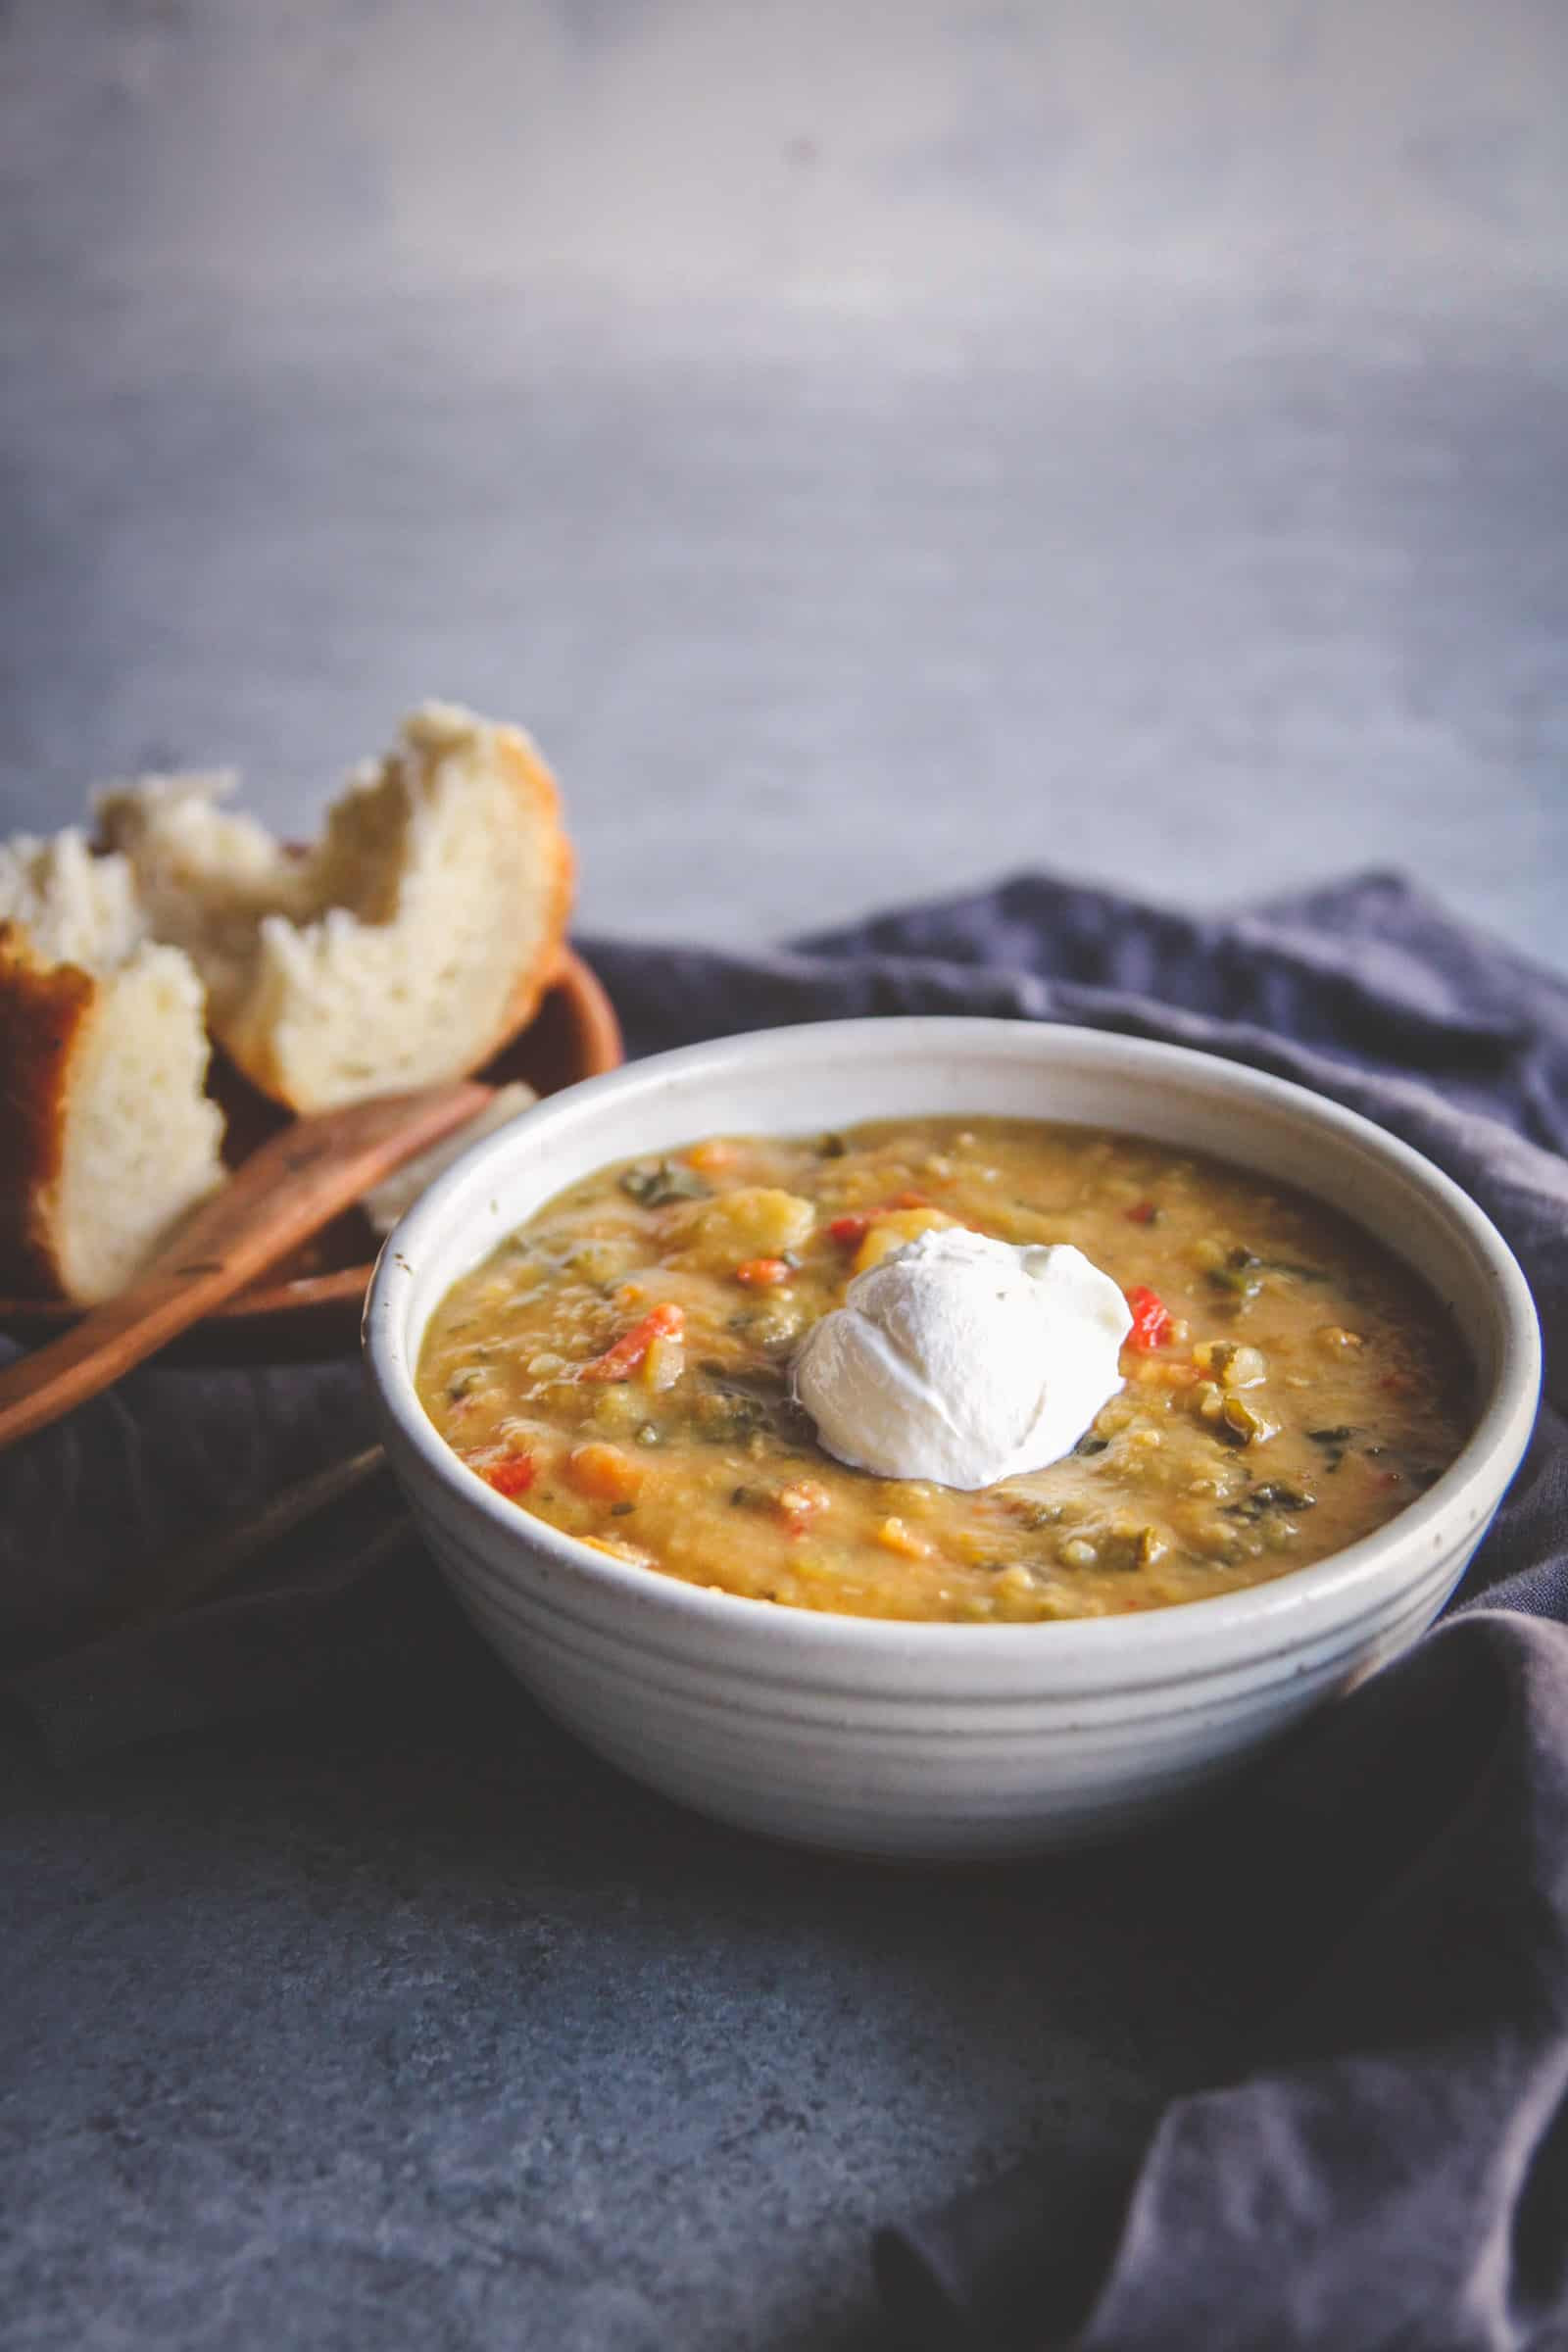 Slow Cooker Vegetable Soup Recipes Healthy  Healthy Slow Cooker Lentil and Ve able Soup Sweetphi